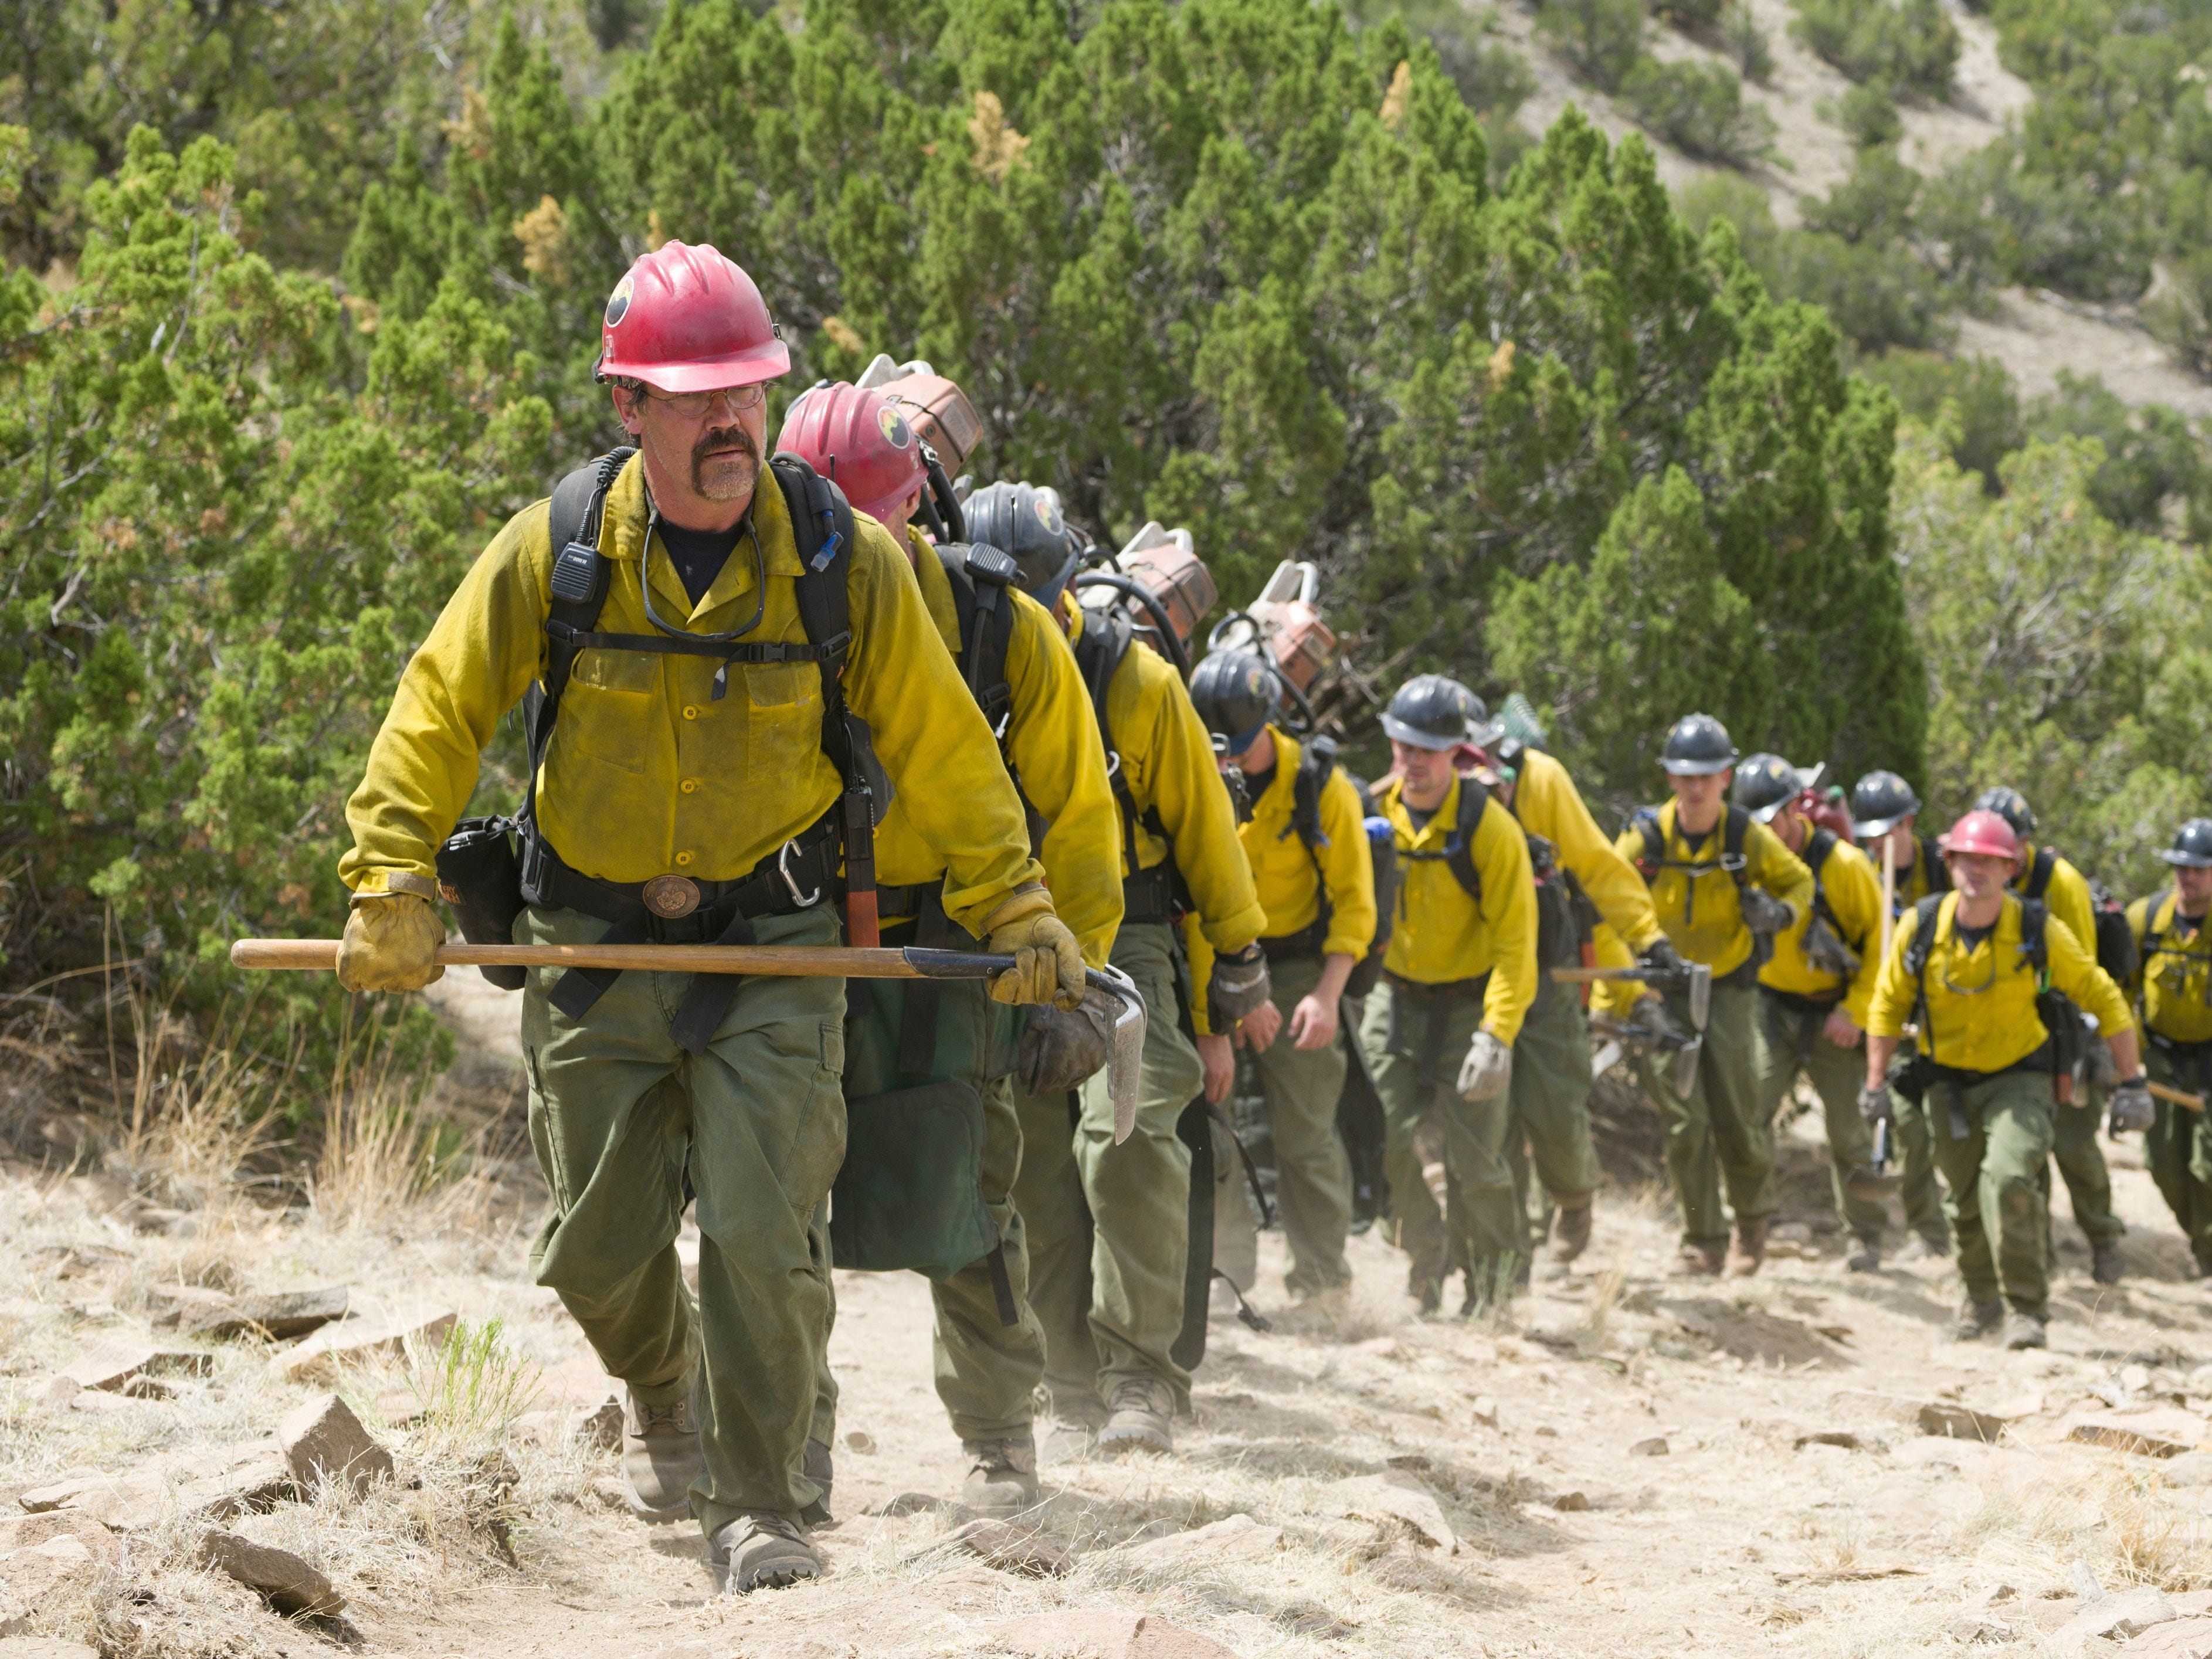 """'Only the Brave' (2017): The harrowing """"Only the Brave"""" explores the lives of the Granite Mountain Hotshots killed during the Yarnell Hill fire. Starring Josh Brolin, Jennifer Connelly and Miles Teller, this story of heroism, sacrifice and survival is seared into recent Arizona history. But the movie was filmed entirely in New Mexico, save for a fleeting shot of downtown Prescott.  """"I wish they would have filmed it here,"""" said Gov. Doug Ducey, who is not a fan of a specialty tax break for filmmakers. """"Of course, we always want to bring industry here."""""""